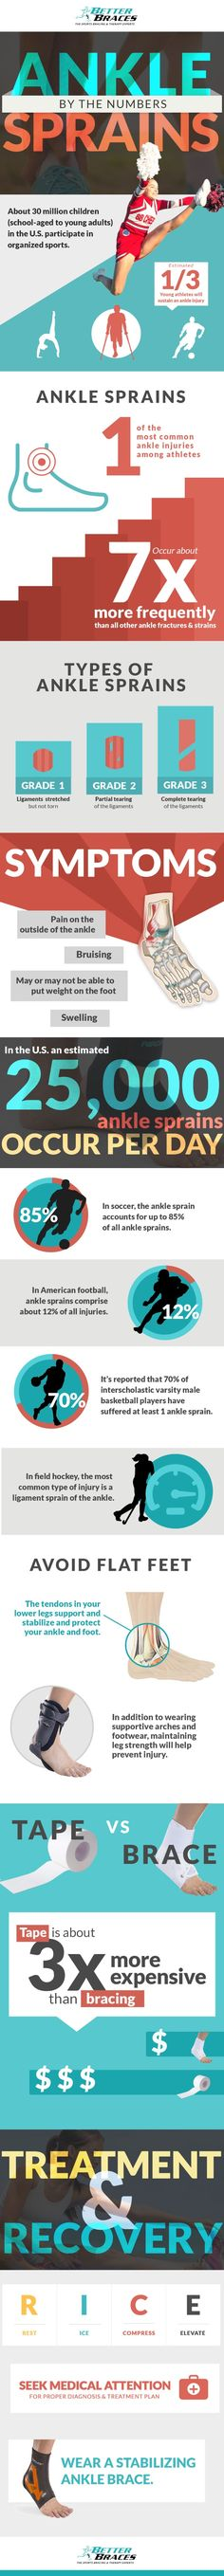 Whether running, jumping, kicking or even walking, one wrong step or slip can cause seriousankle pain. Ankle sprains happen, in fact about 25,000 ankle sprains occur per day. While ankle sprains are common among sports like soccer, football, basketball and hockey, a leisurely walk still may cause an ankle injury. This means you have stretched or torn the ankle ligaments. Some ankle spra…